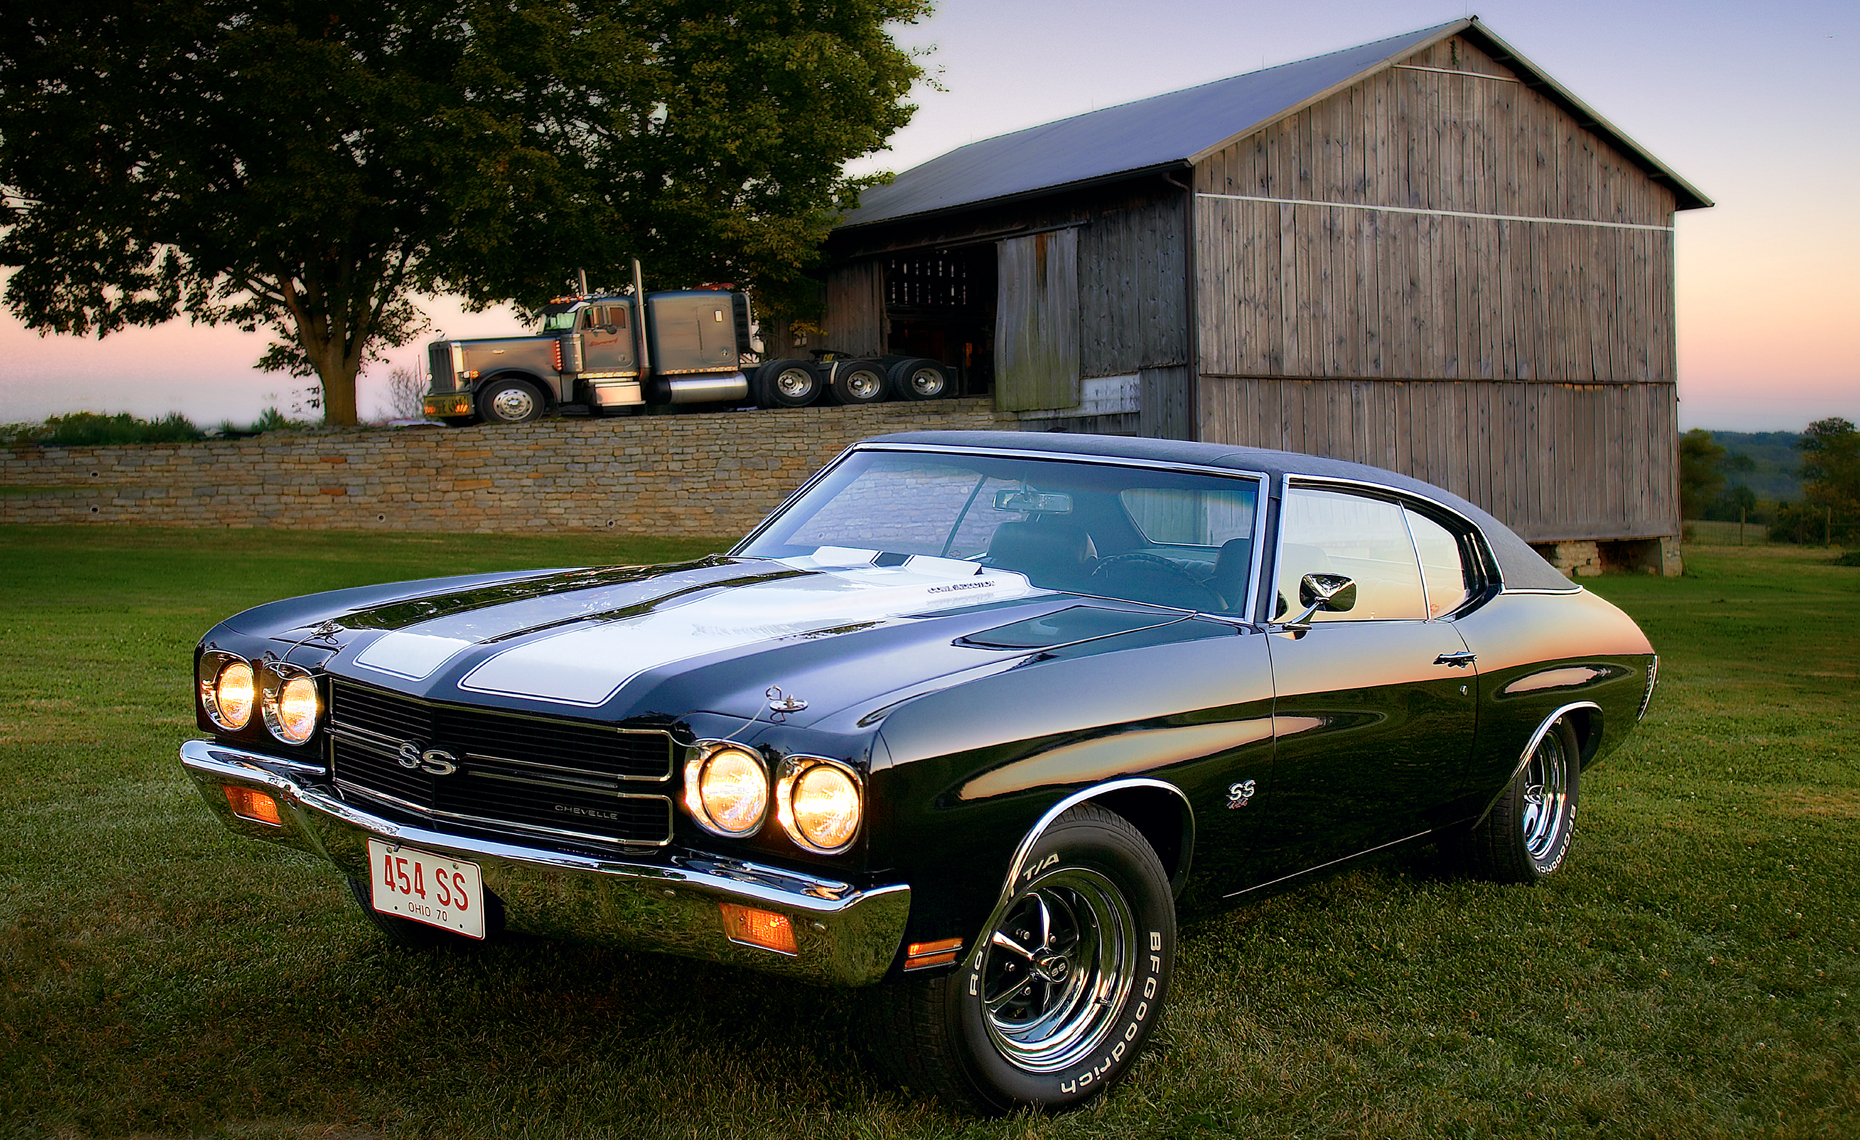 Chevelle-and-barn